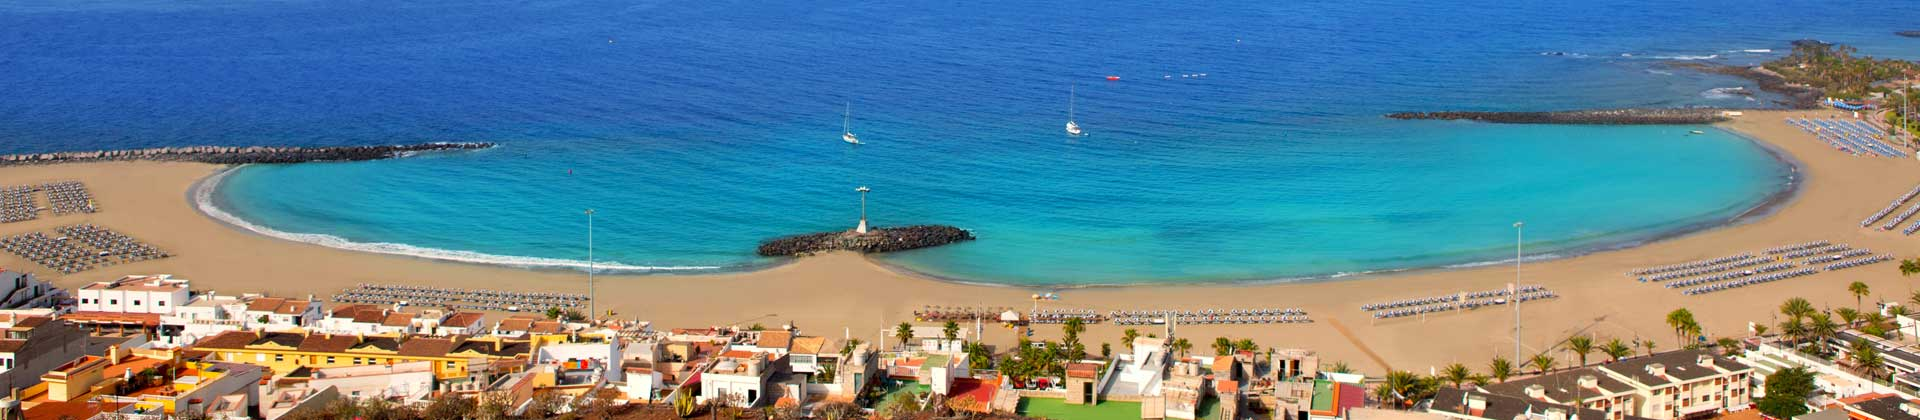 https://www.goodmorningtenerife.com/wp-content/uploads/2014/08/01_slide_beaches_GM_Tenerife1.jpg